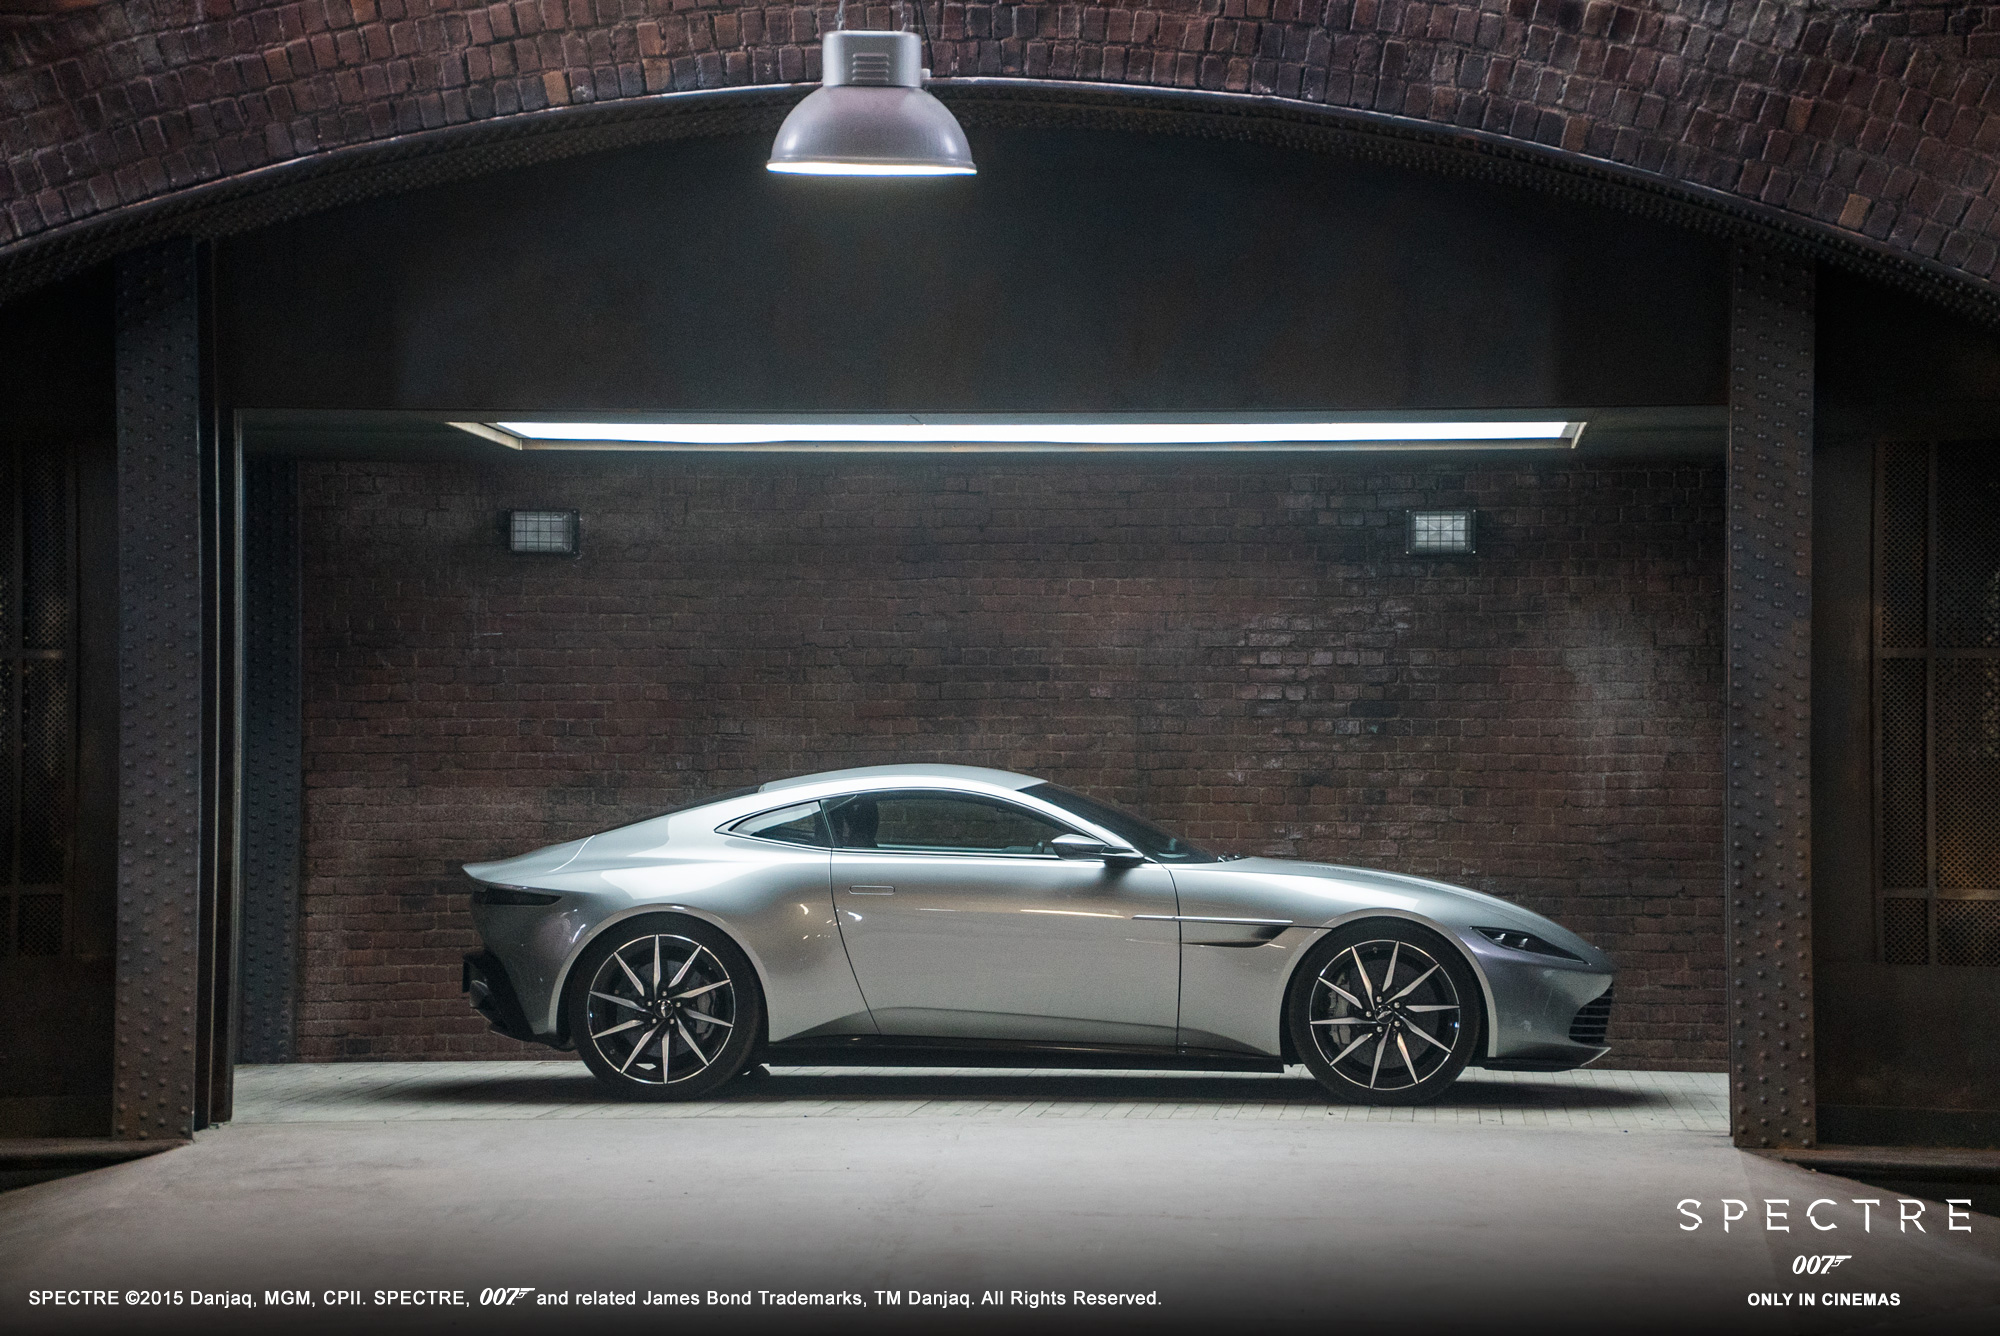 Aston Martin DB10 - Spectre 2015 - profil / side-face